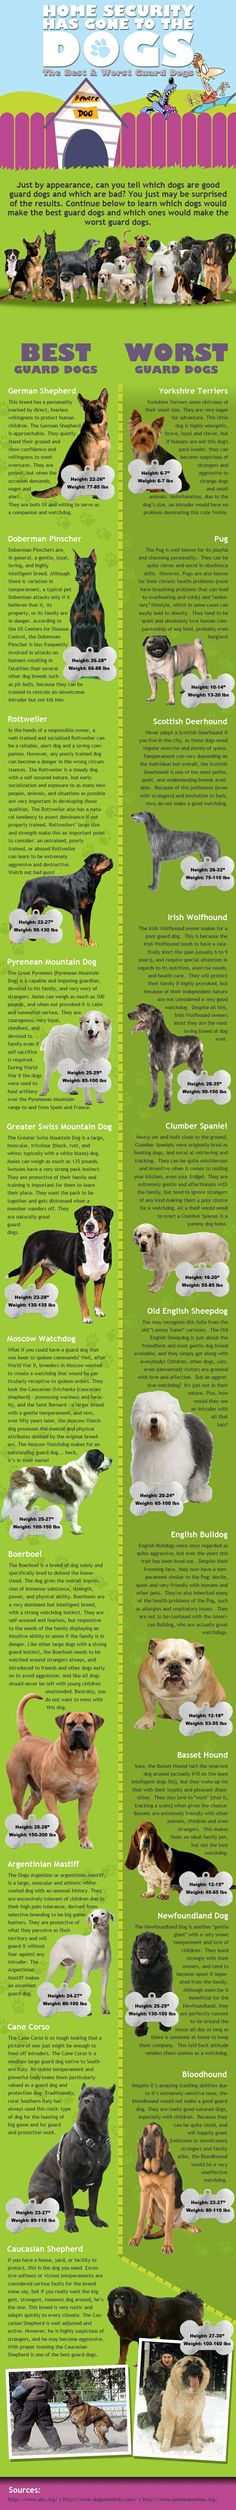 Home Security Has Gone To The Dogs. Excellent source of information about dog security and protection. Anyone interest in home security should read this!